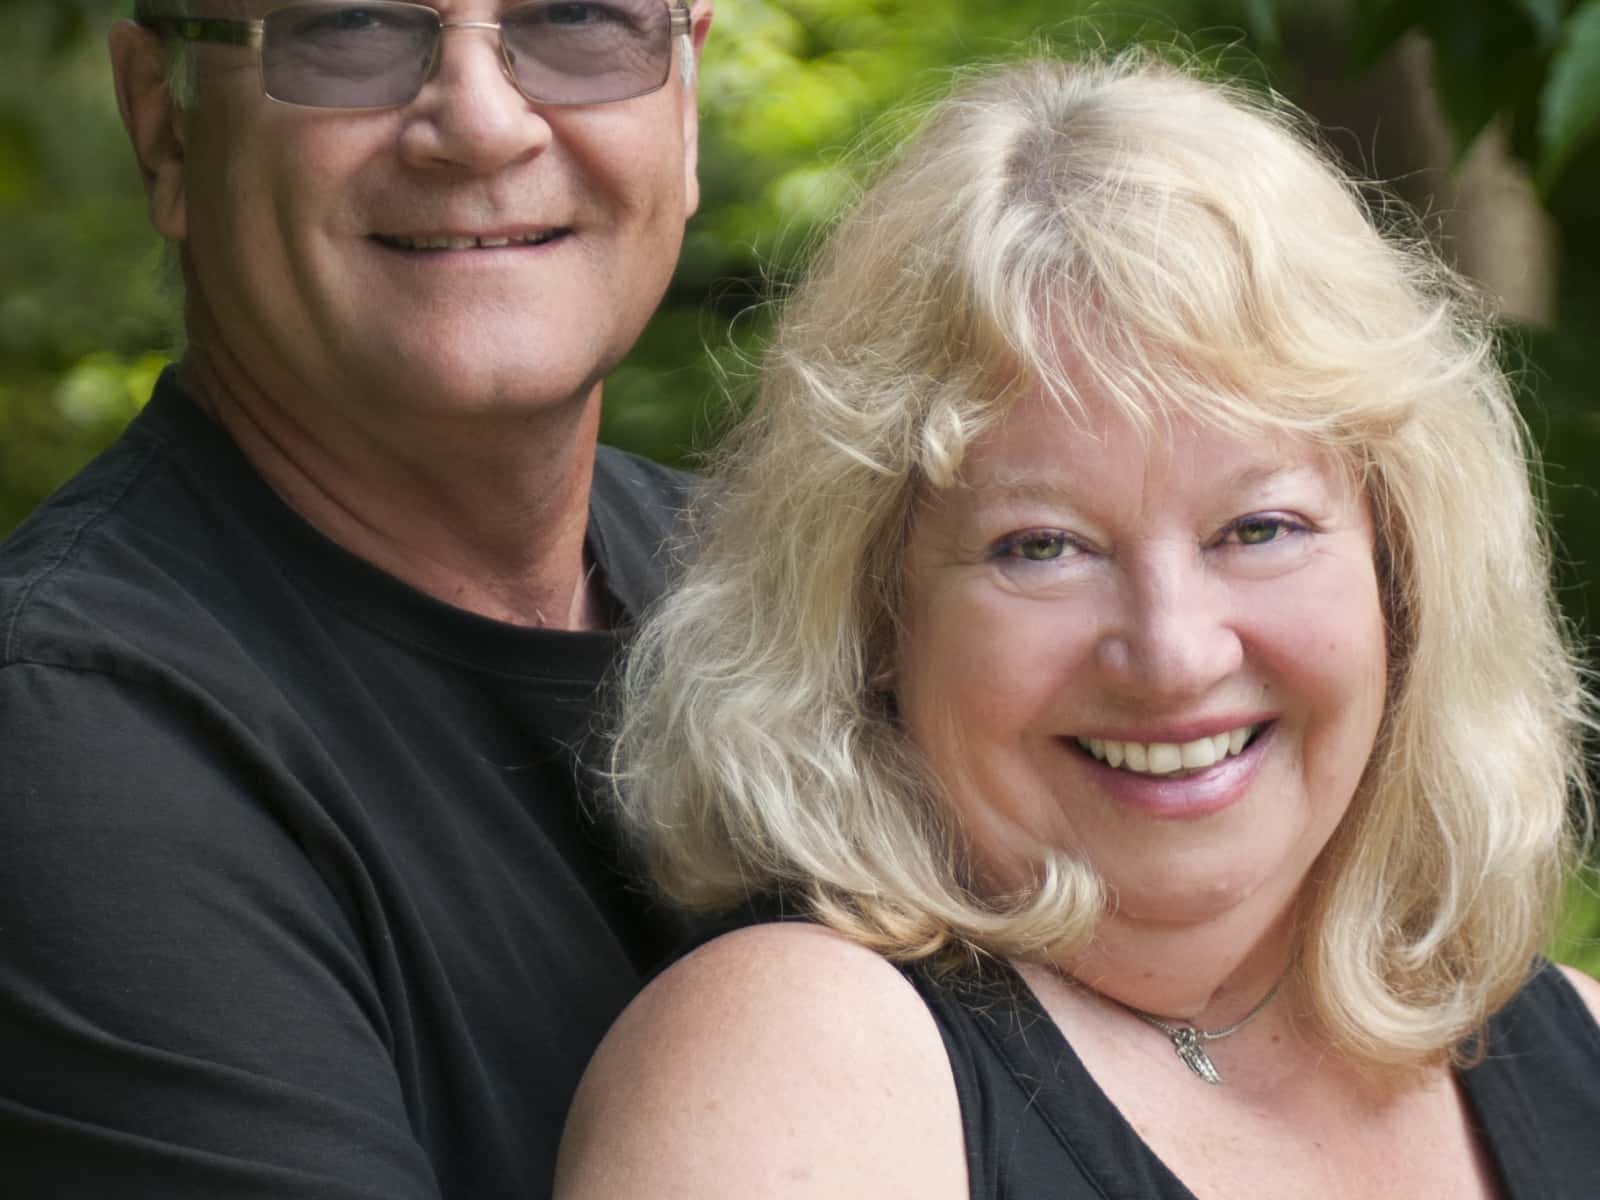 Alan & patricia & Patricia from Chilliwack, British Columbia, Canada